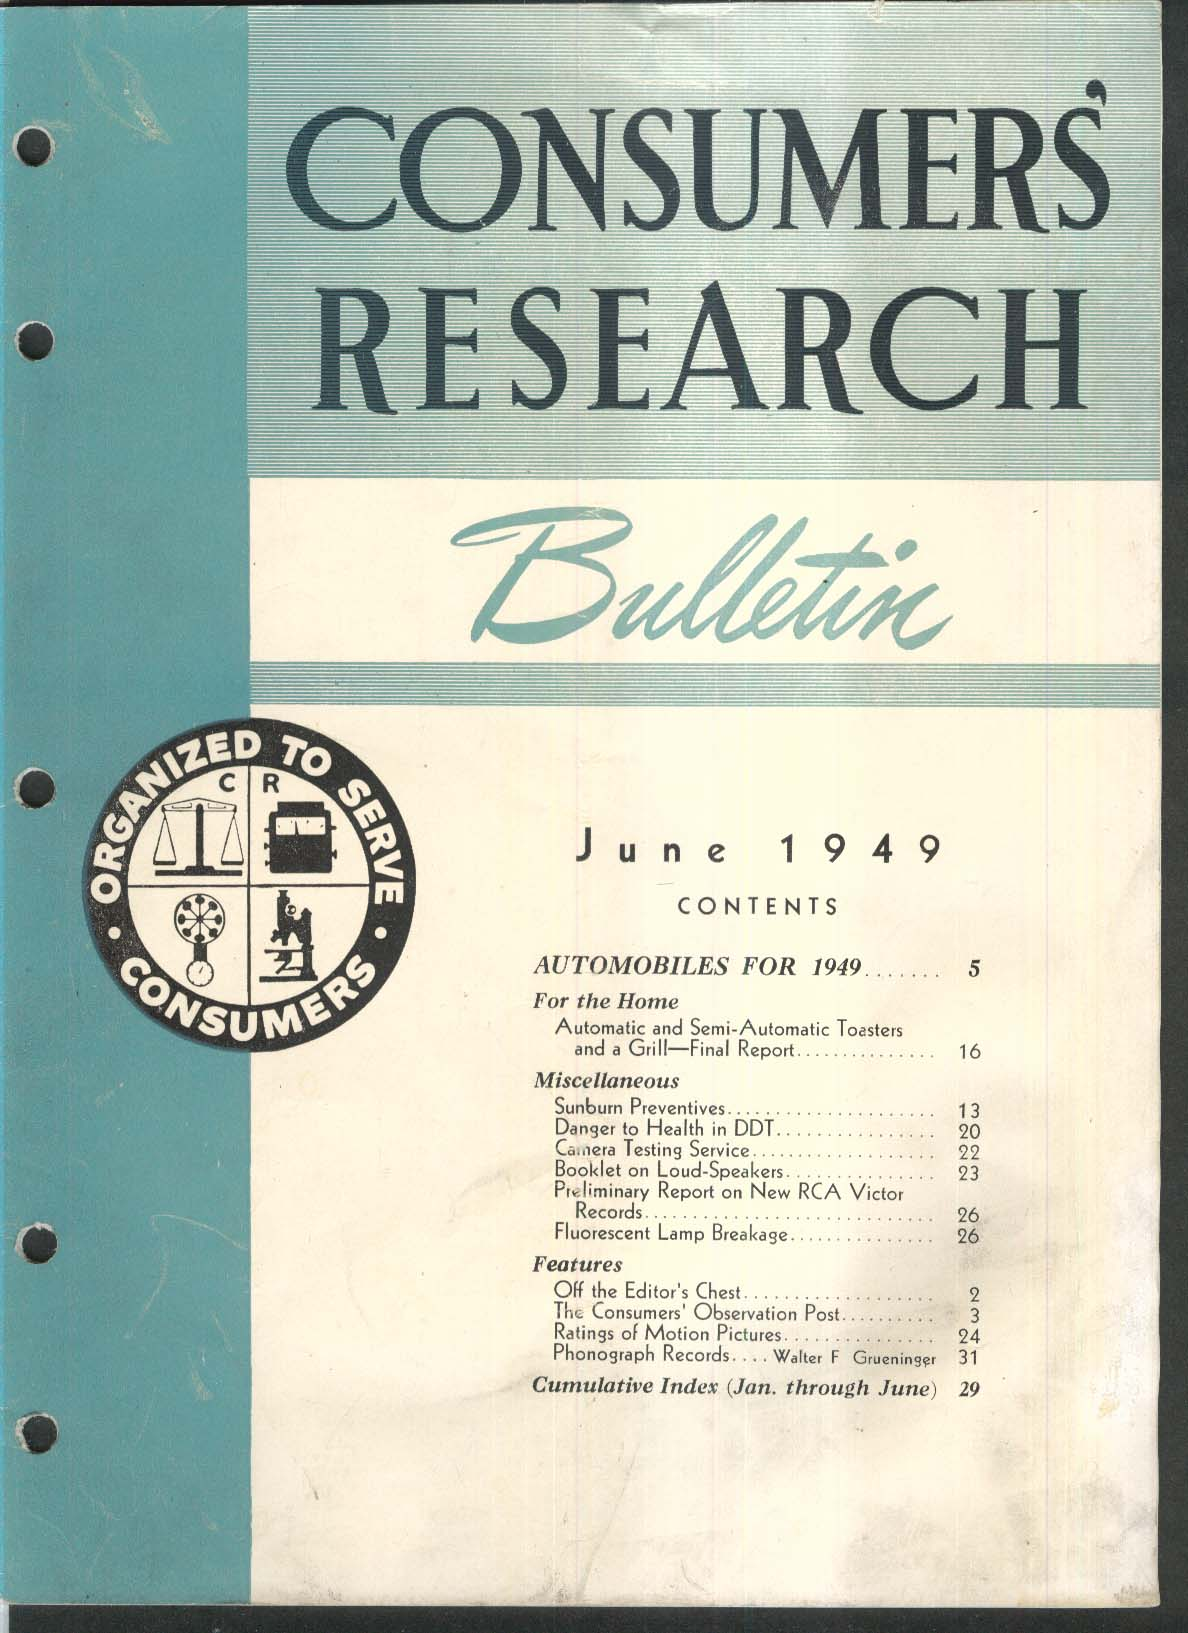 CONSUMERS RESEARCH BULLETIN Toasters; Sunburn Preventives; RCA Victor ++ 6 1949